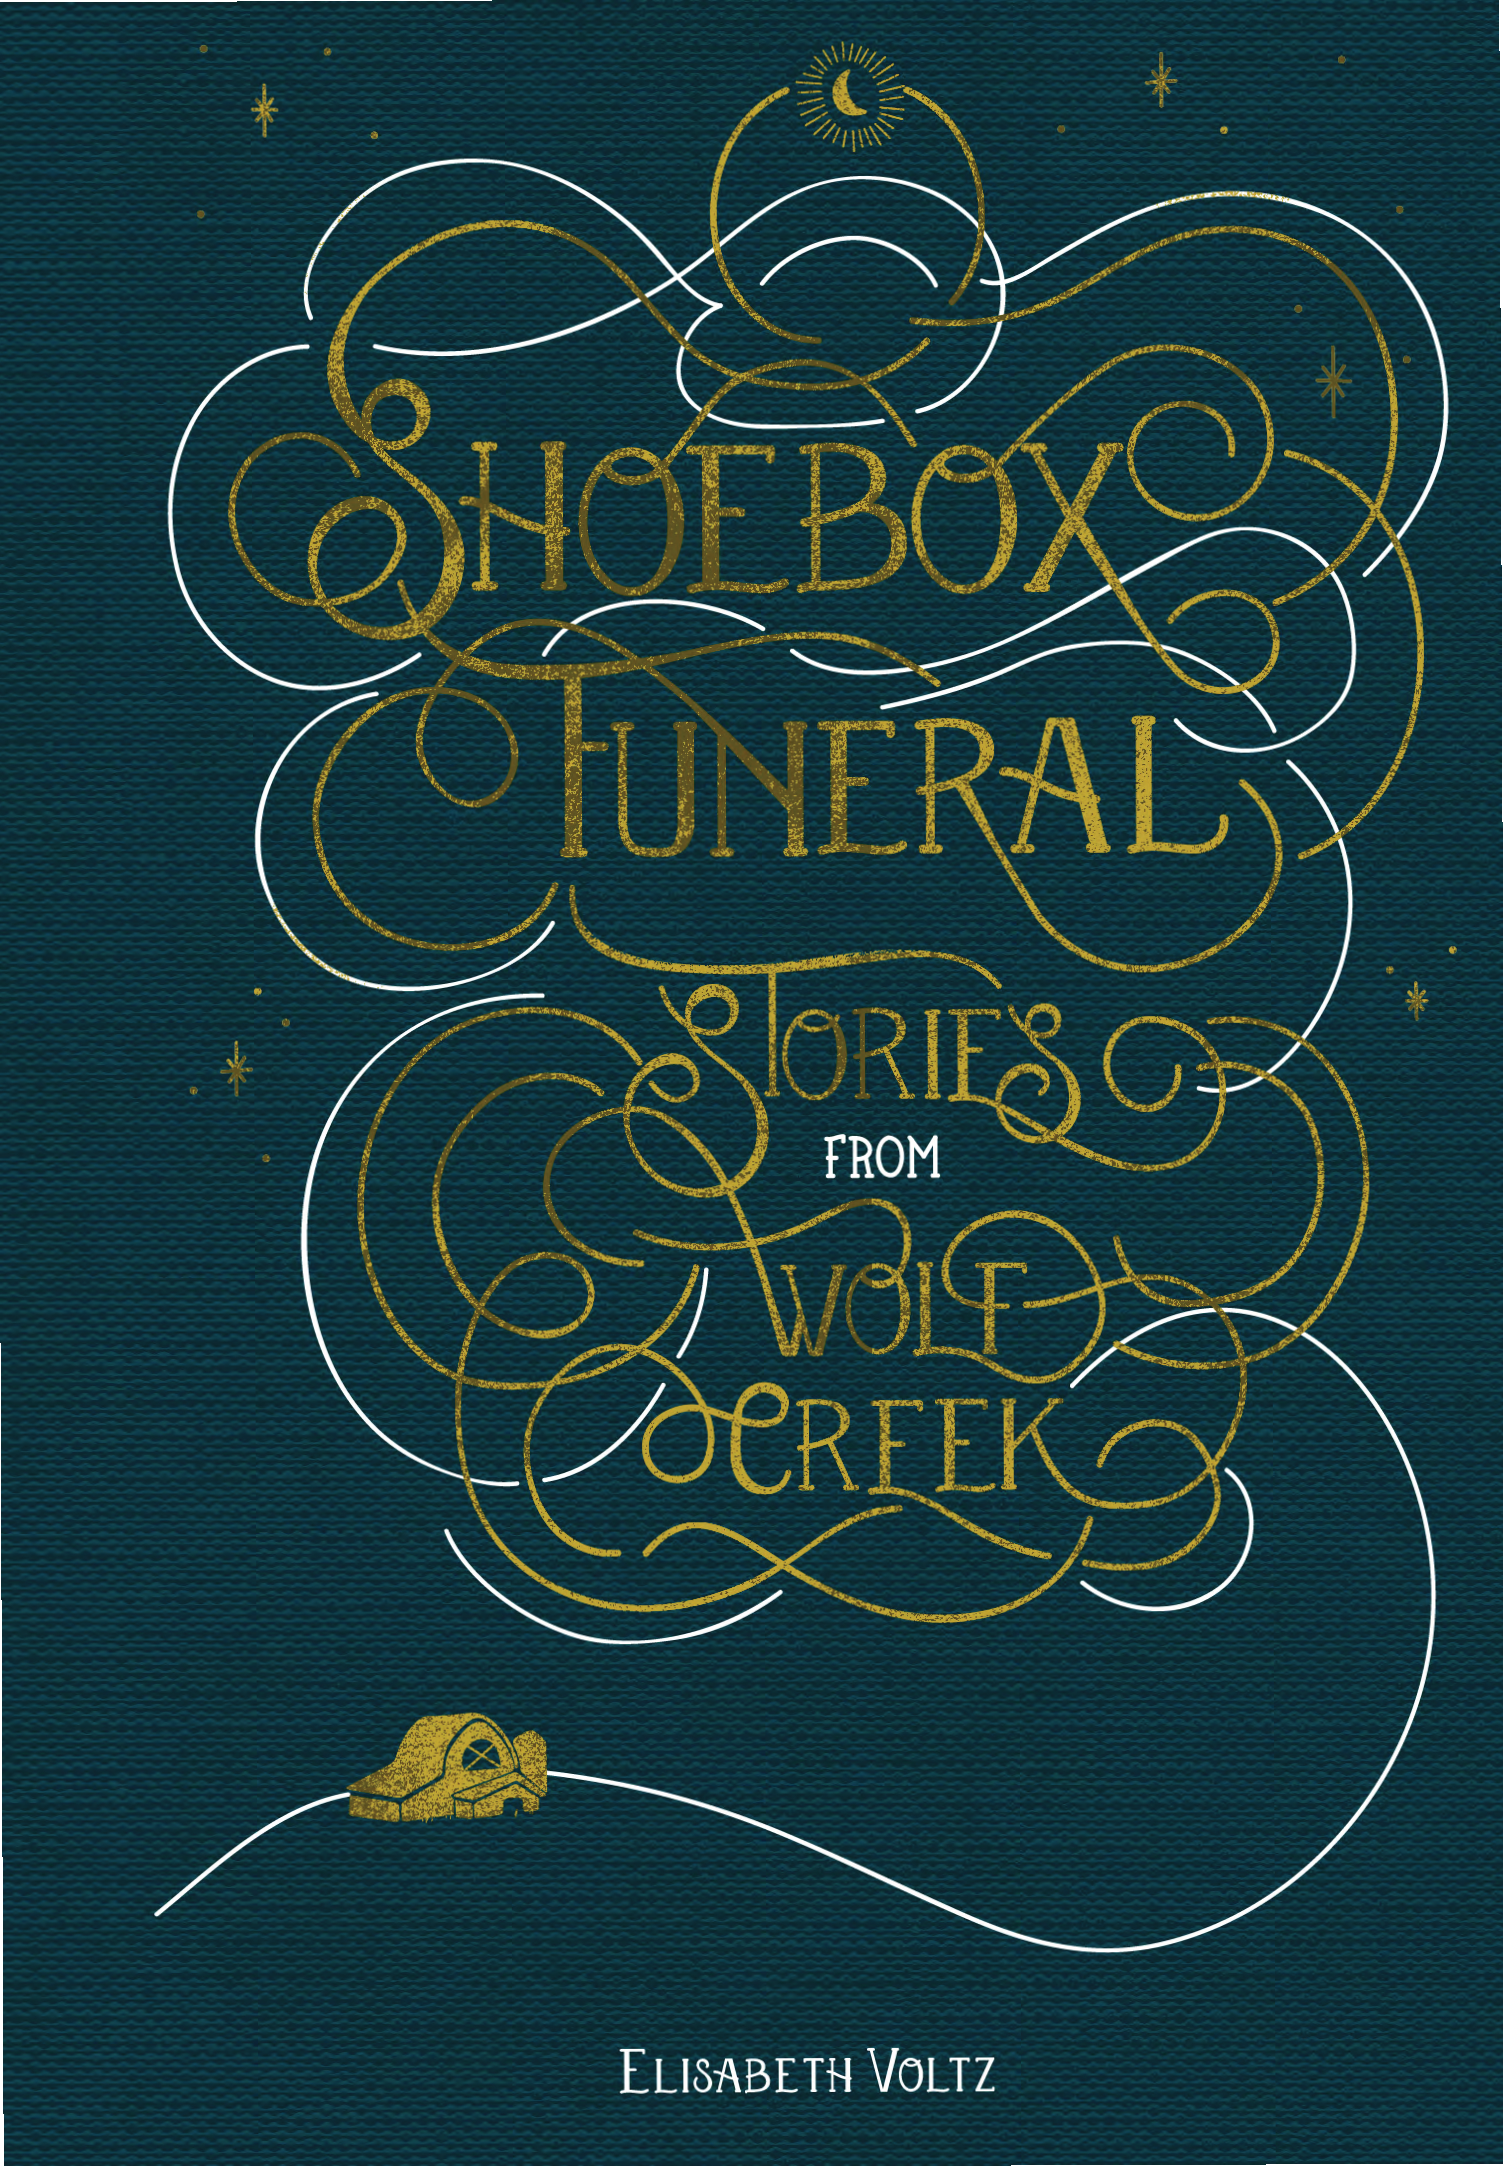 Shoebox Funeral: Stories from Wolf Creek , Elisabeth Voltz. Animal Media Group LLC, July 2017. 250 pp.